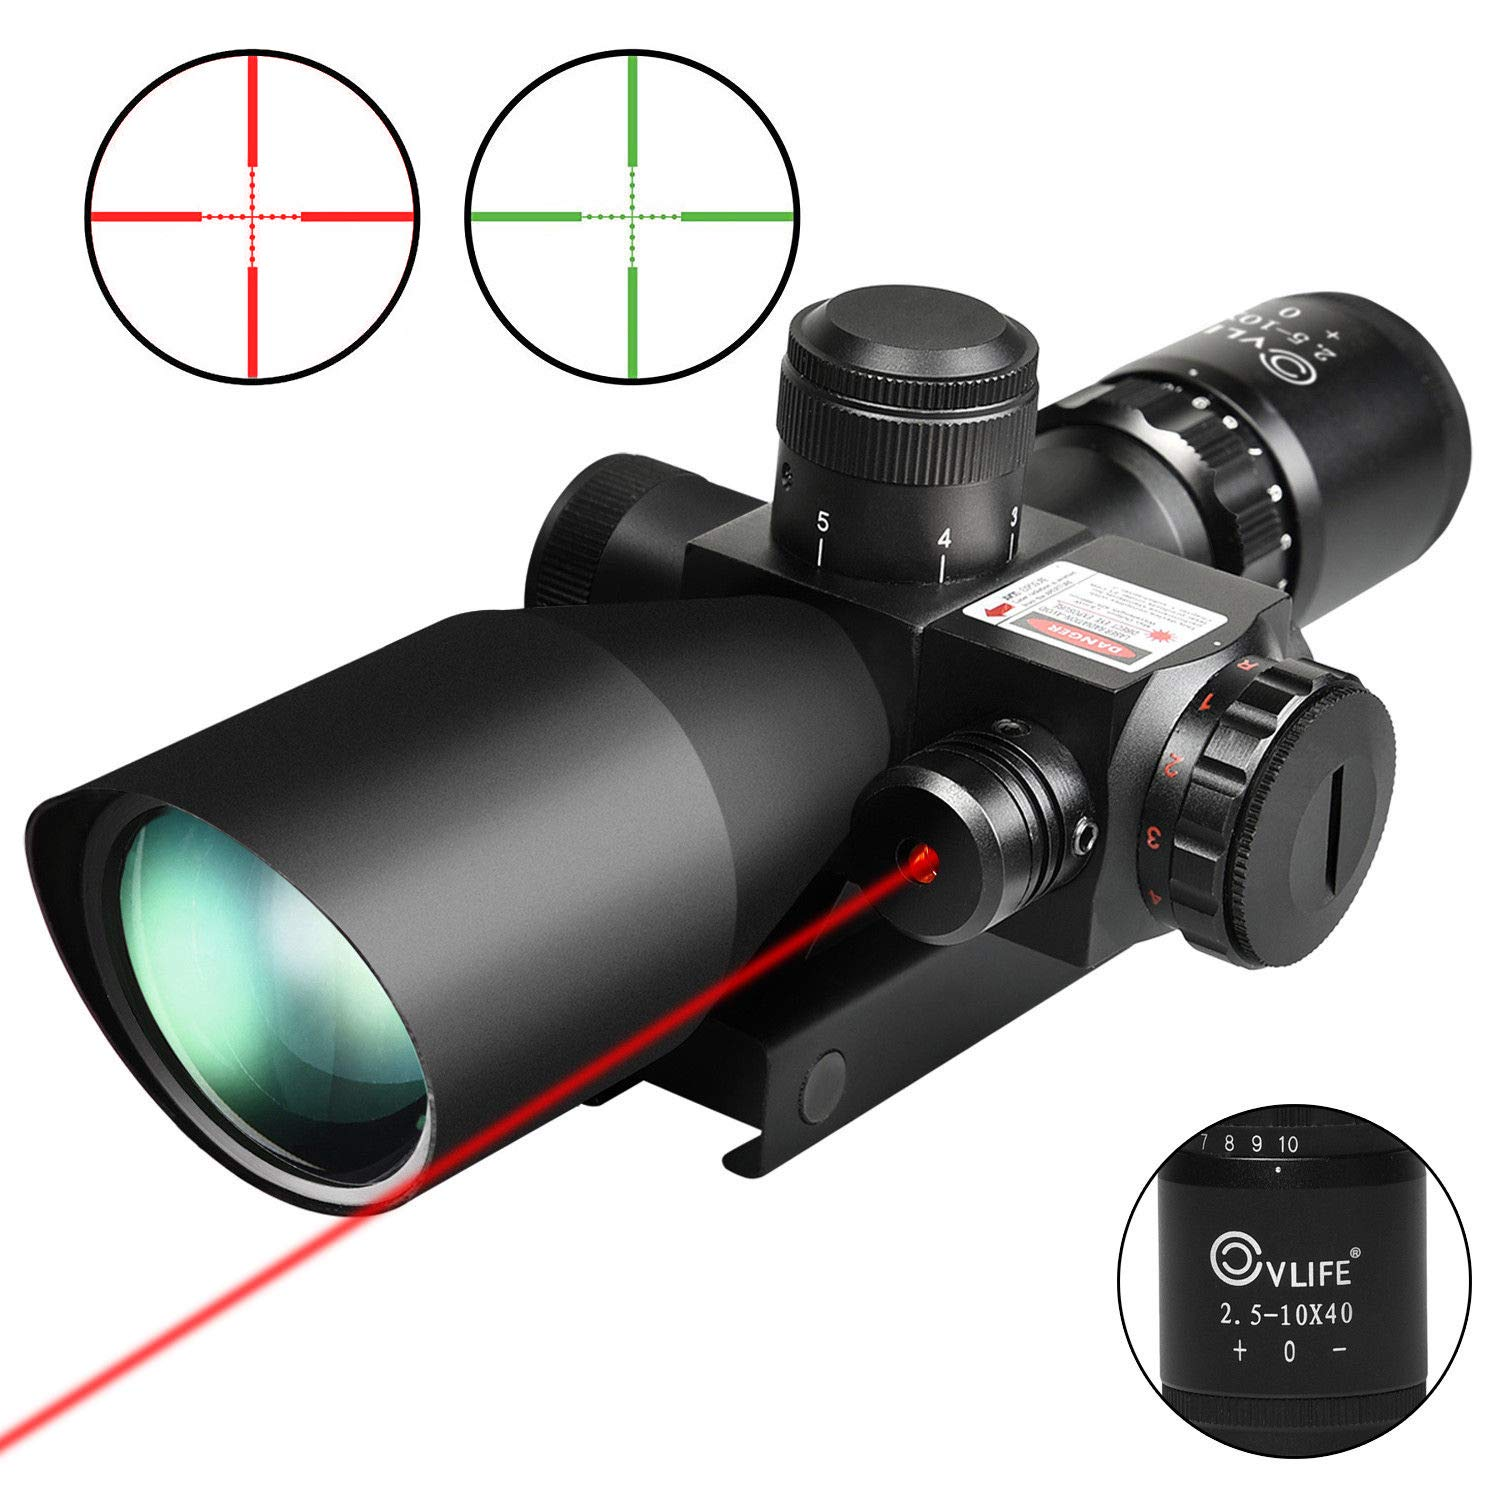 1.CVLIFE 2.5-10x40e Red & Green Illuminated Scope